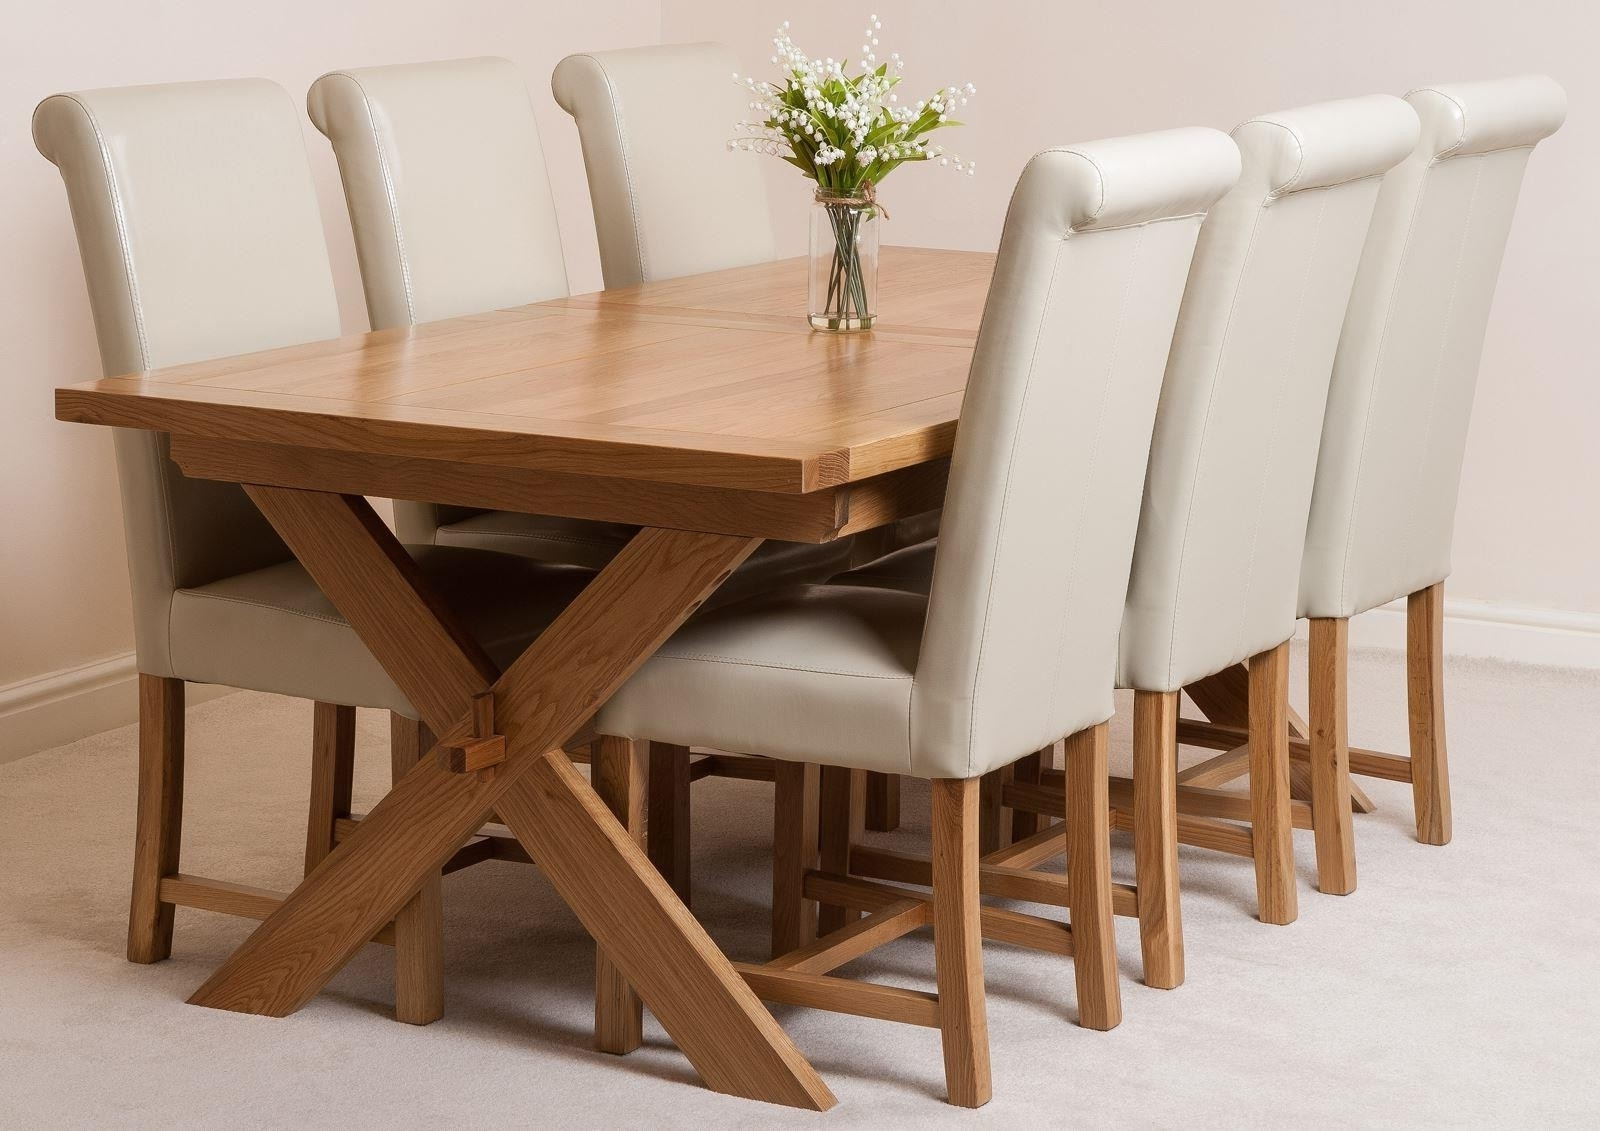 Oak Furniture King Within Oak Dining Set 6 Chairs (View 3 of 25)